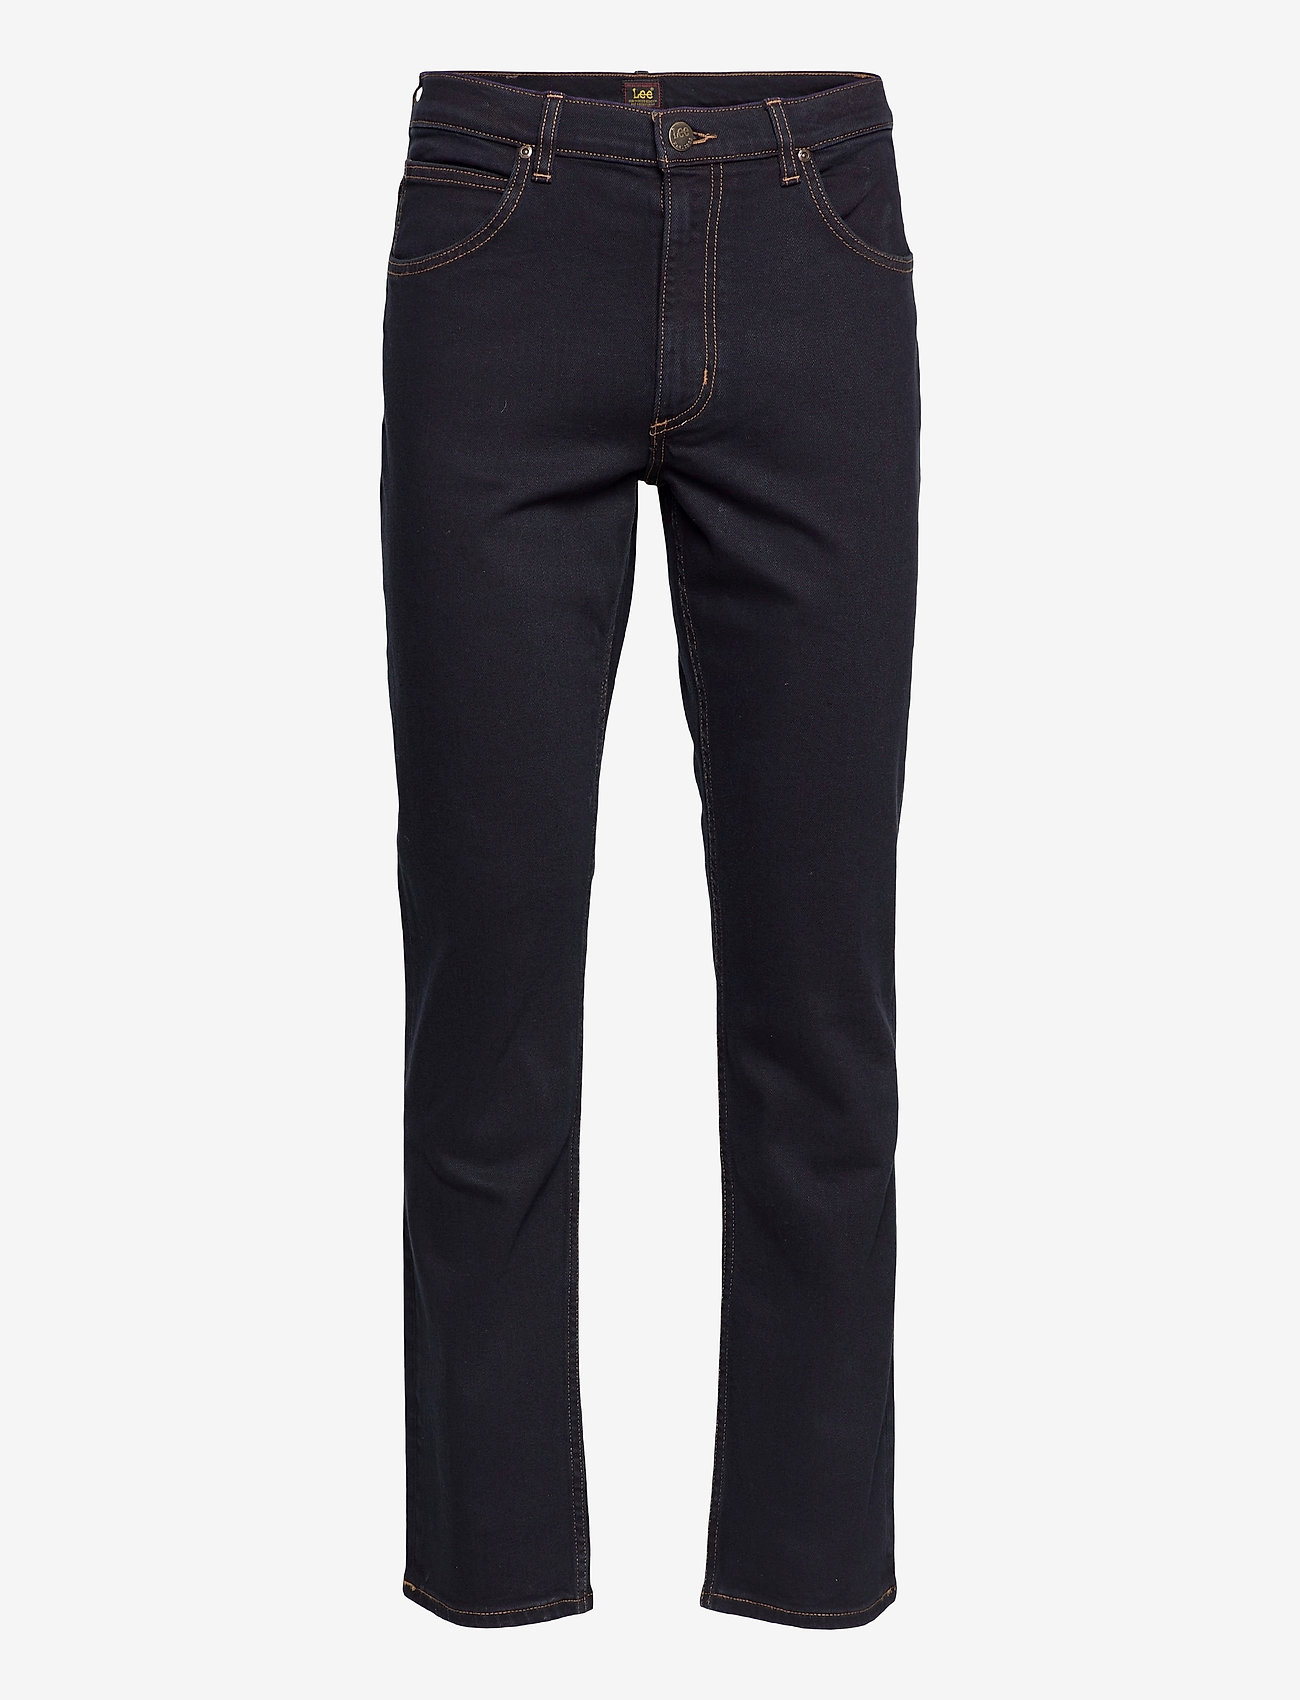 Lee Jeans - BROOKLYN STRAIGHT - relaxed jeans - blue black - 0